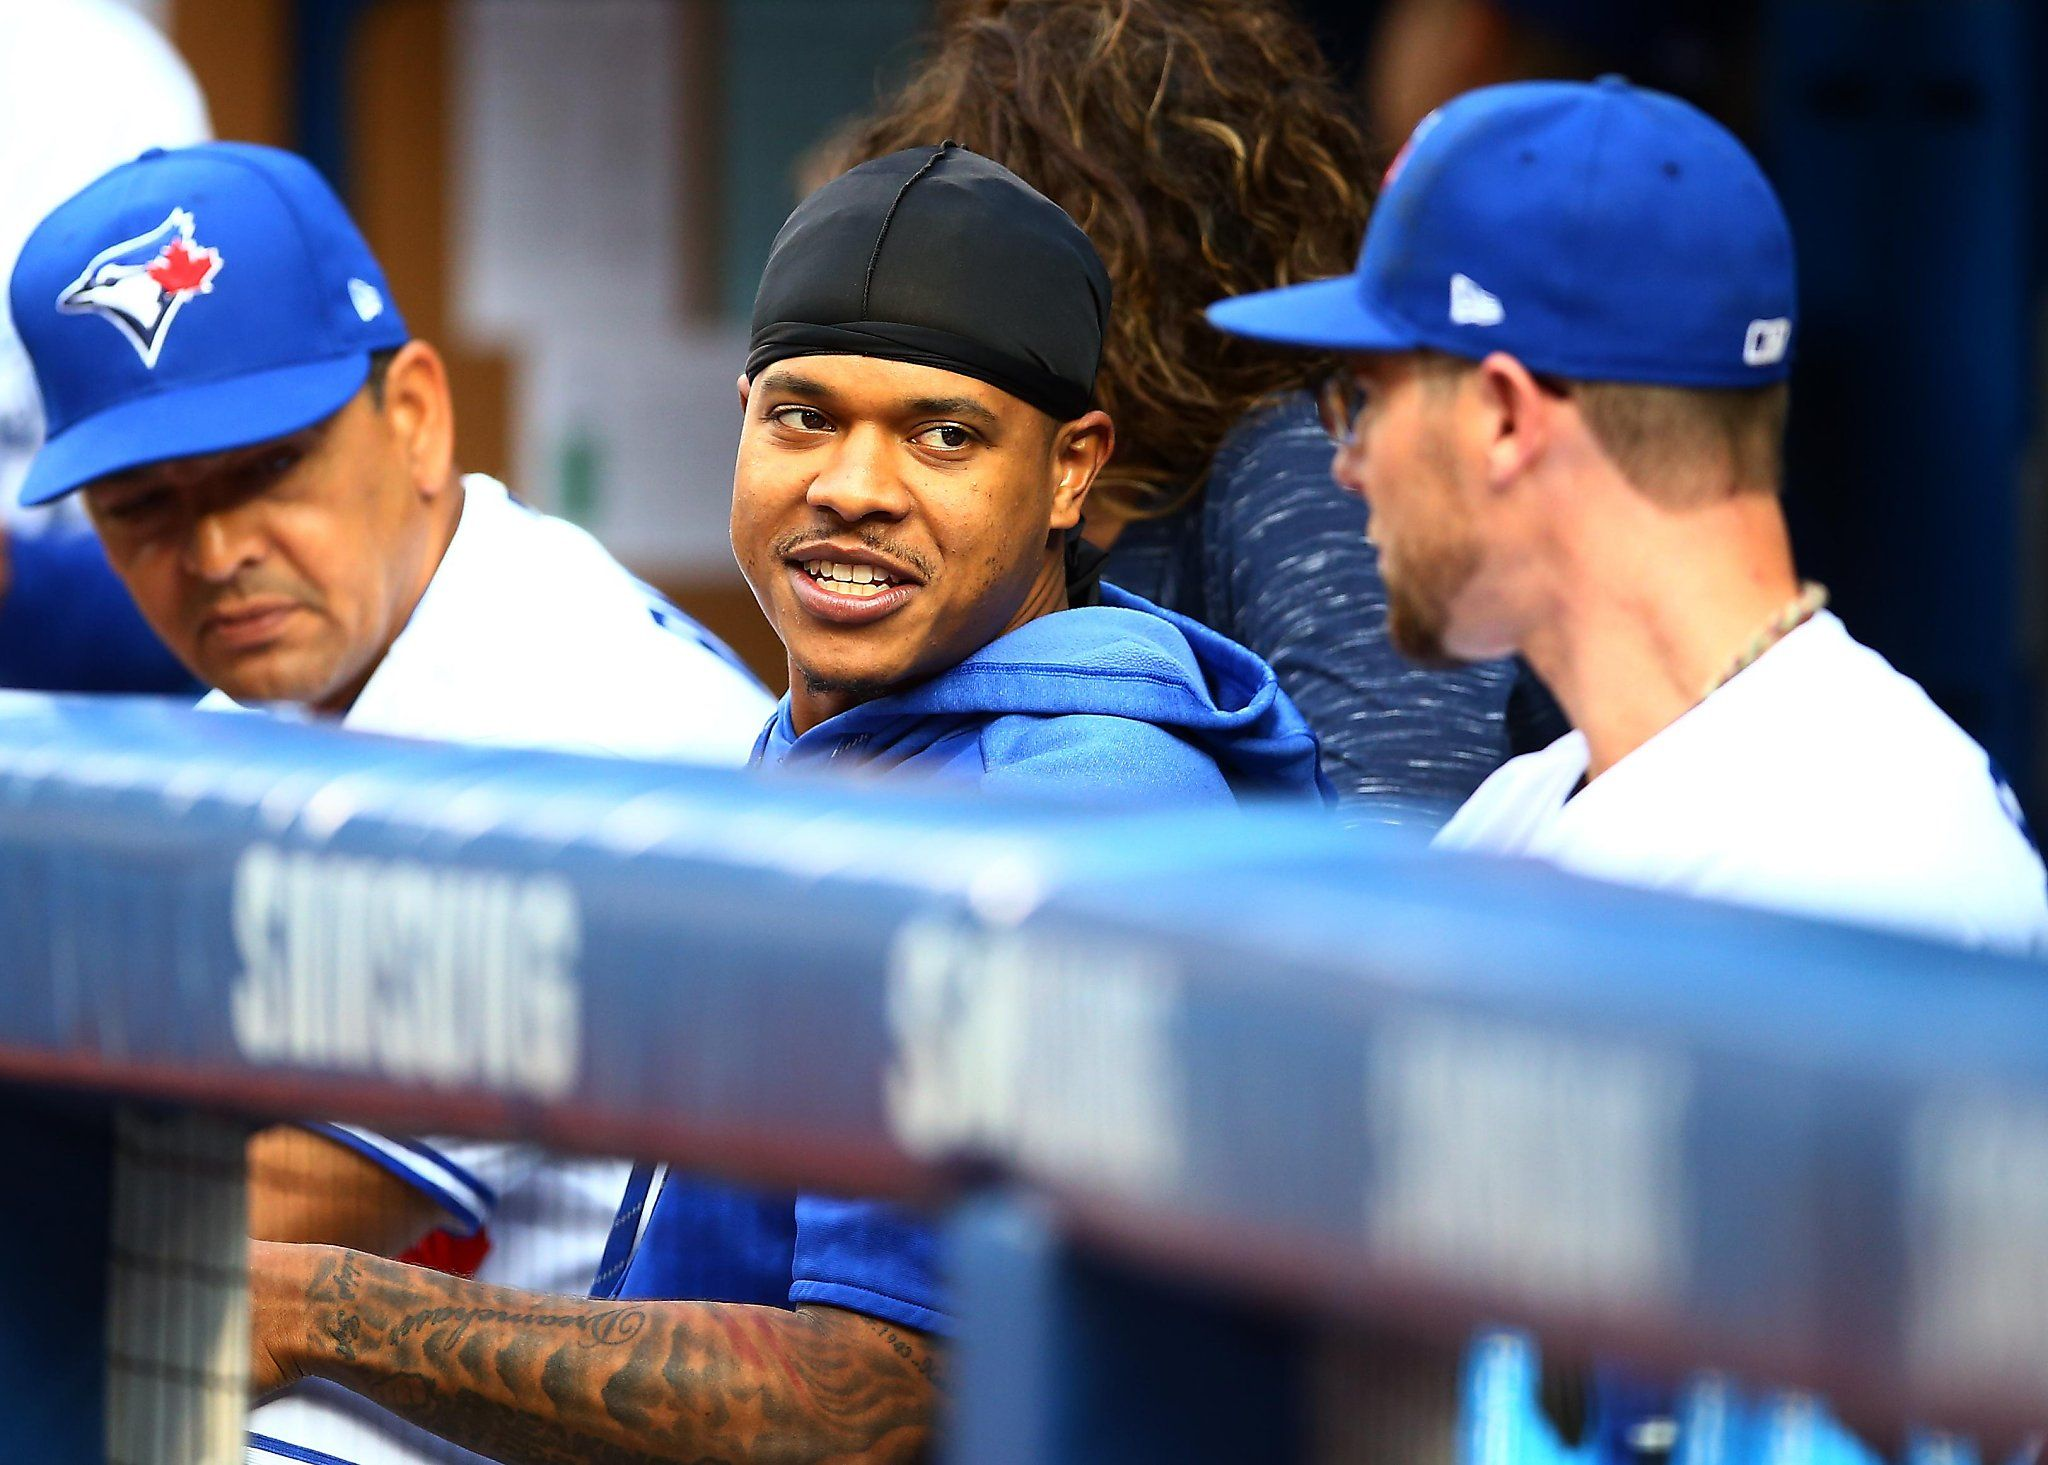 Mlb Rumors Marcus Stroman Was Almost Traded To Yankees In The Top Prospects Exchange Deal Yankees Mlb Marcus Stroman